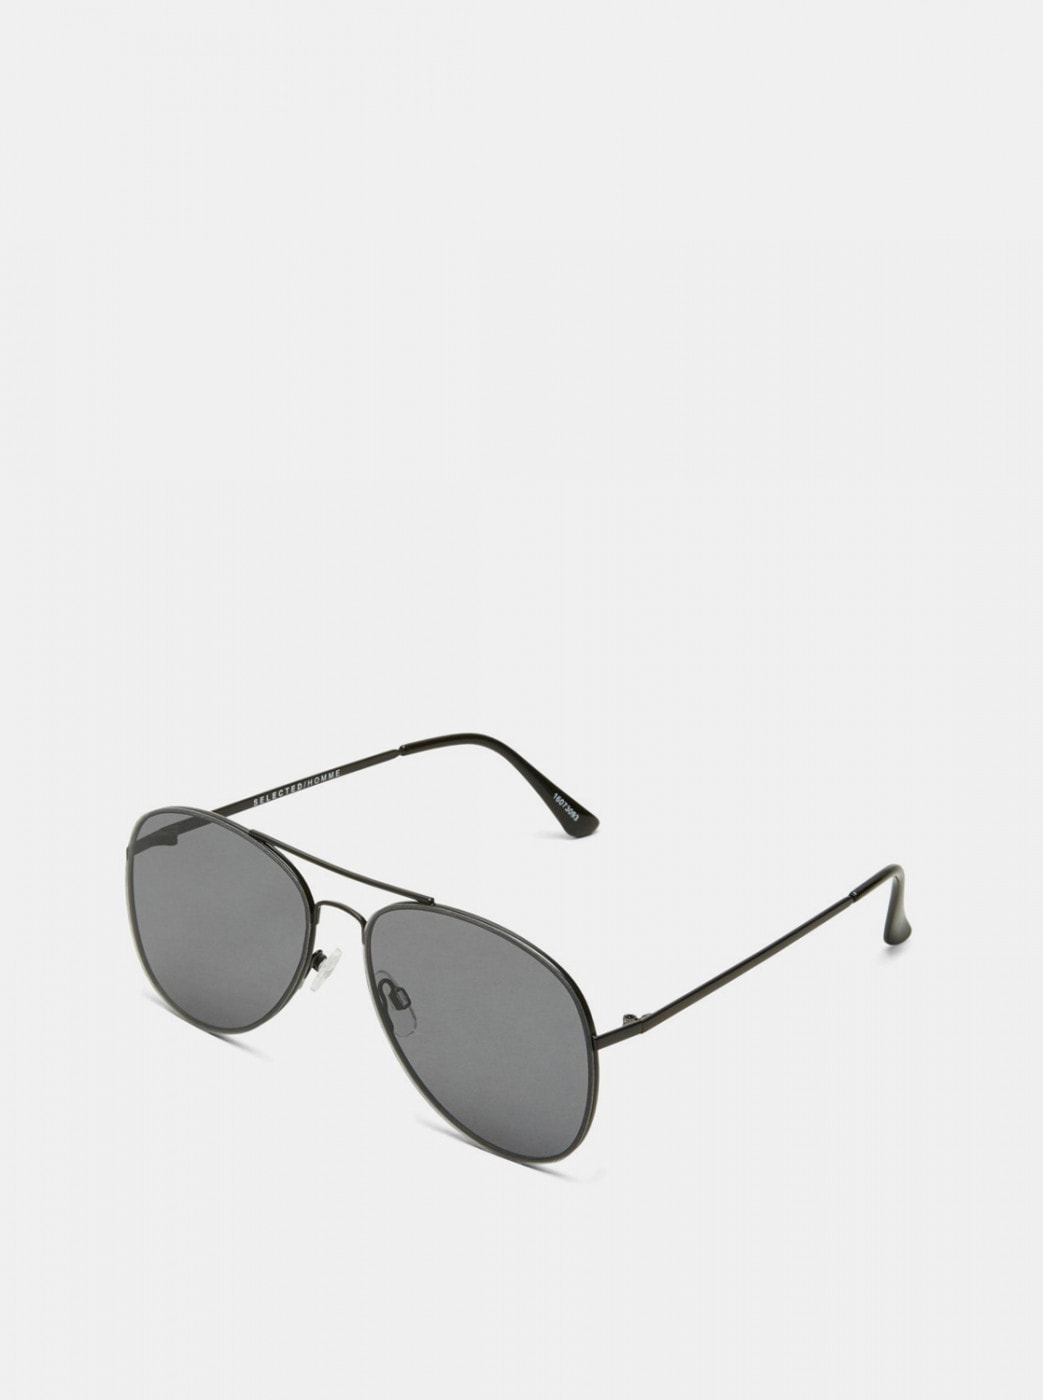 Black Men's Sunglasses Selected By Homme Lyn